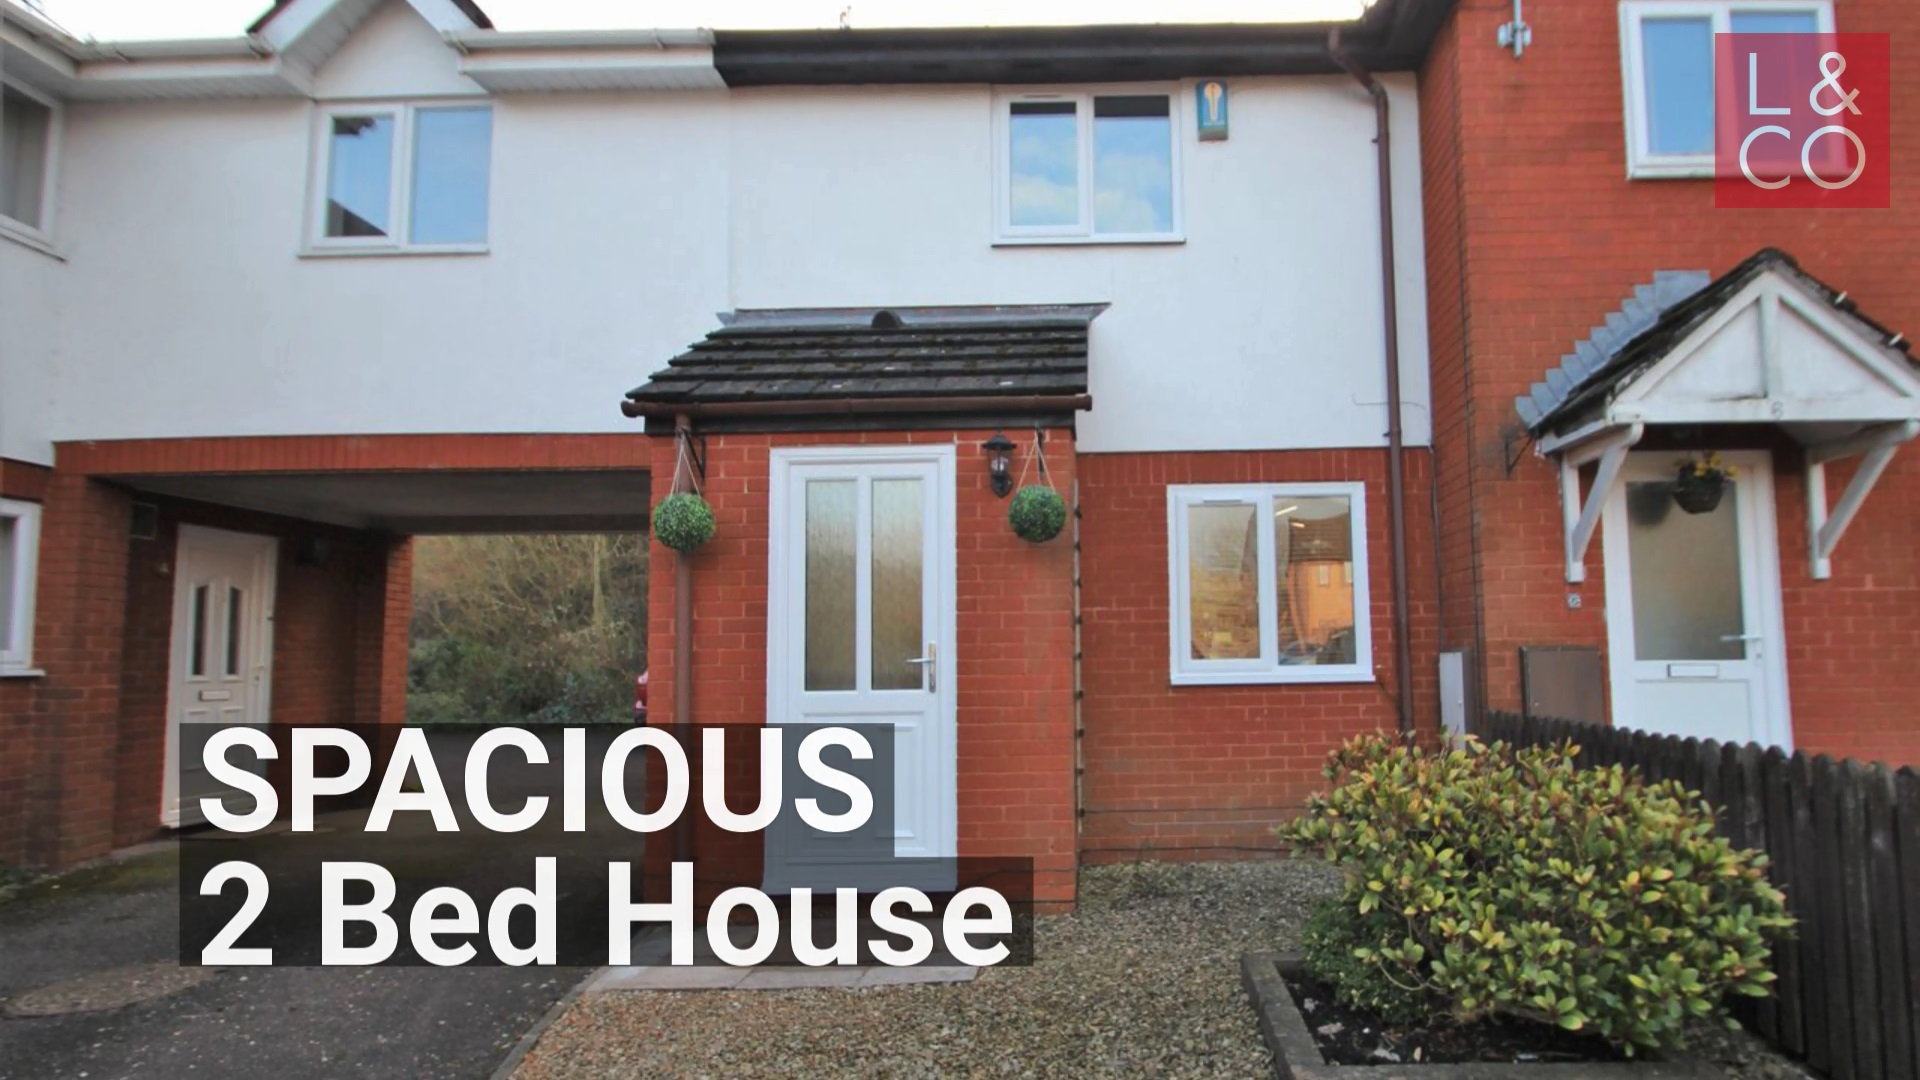 REDECORATED SPACIOUS HOUSE - Silver Fir Square, Rogerstone